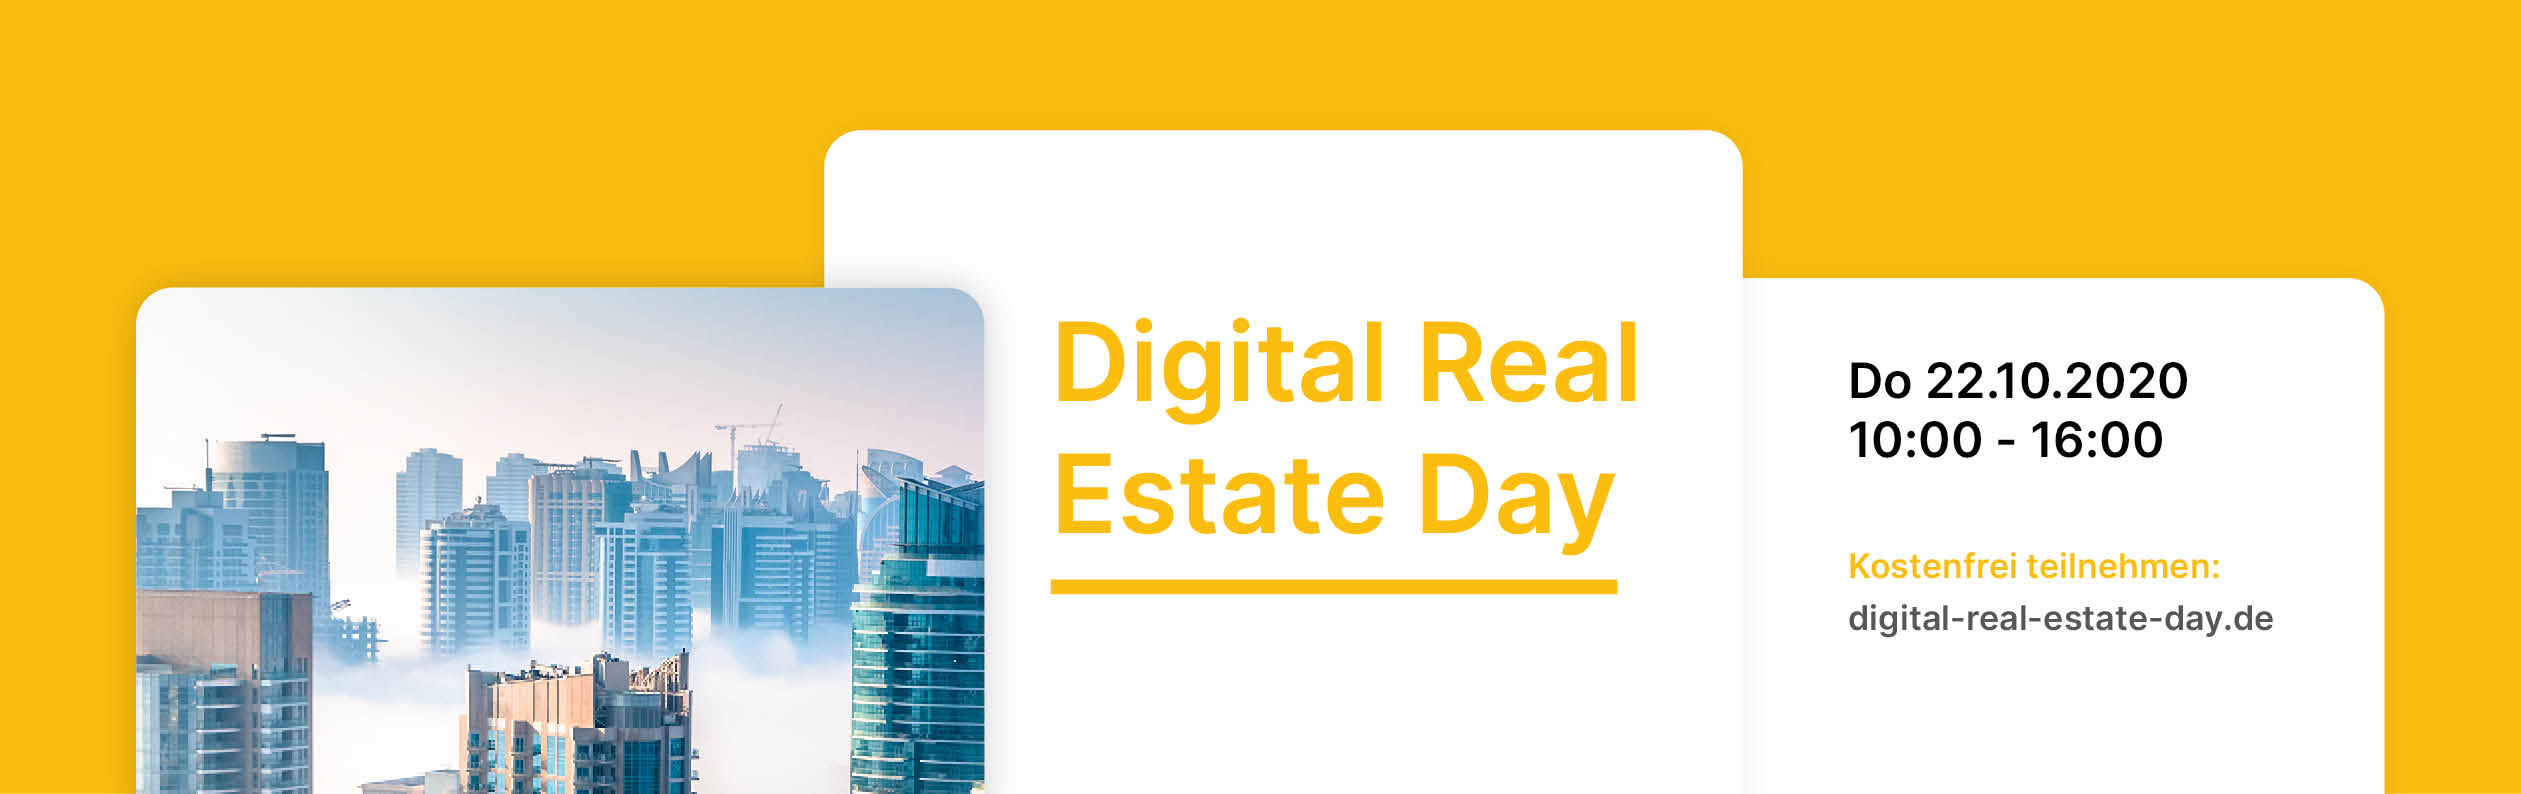 Digital Real Estate Day